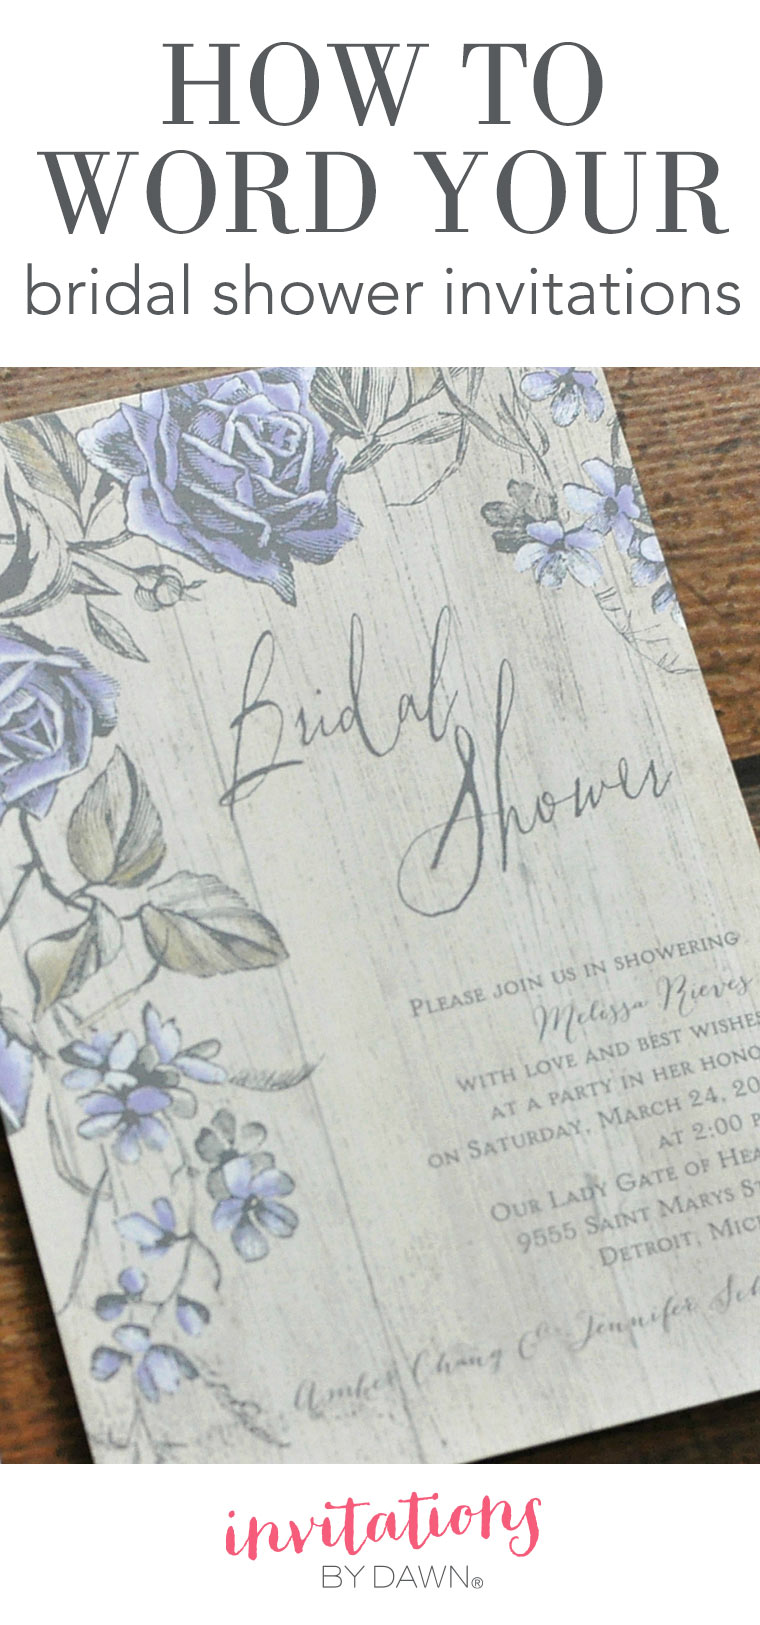 How to Word Your Bridal Shower Invitations